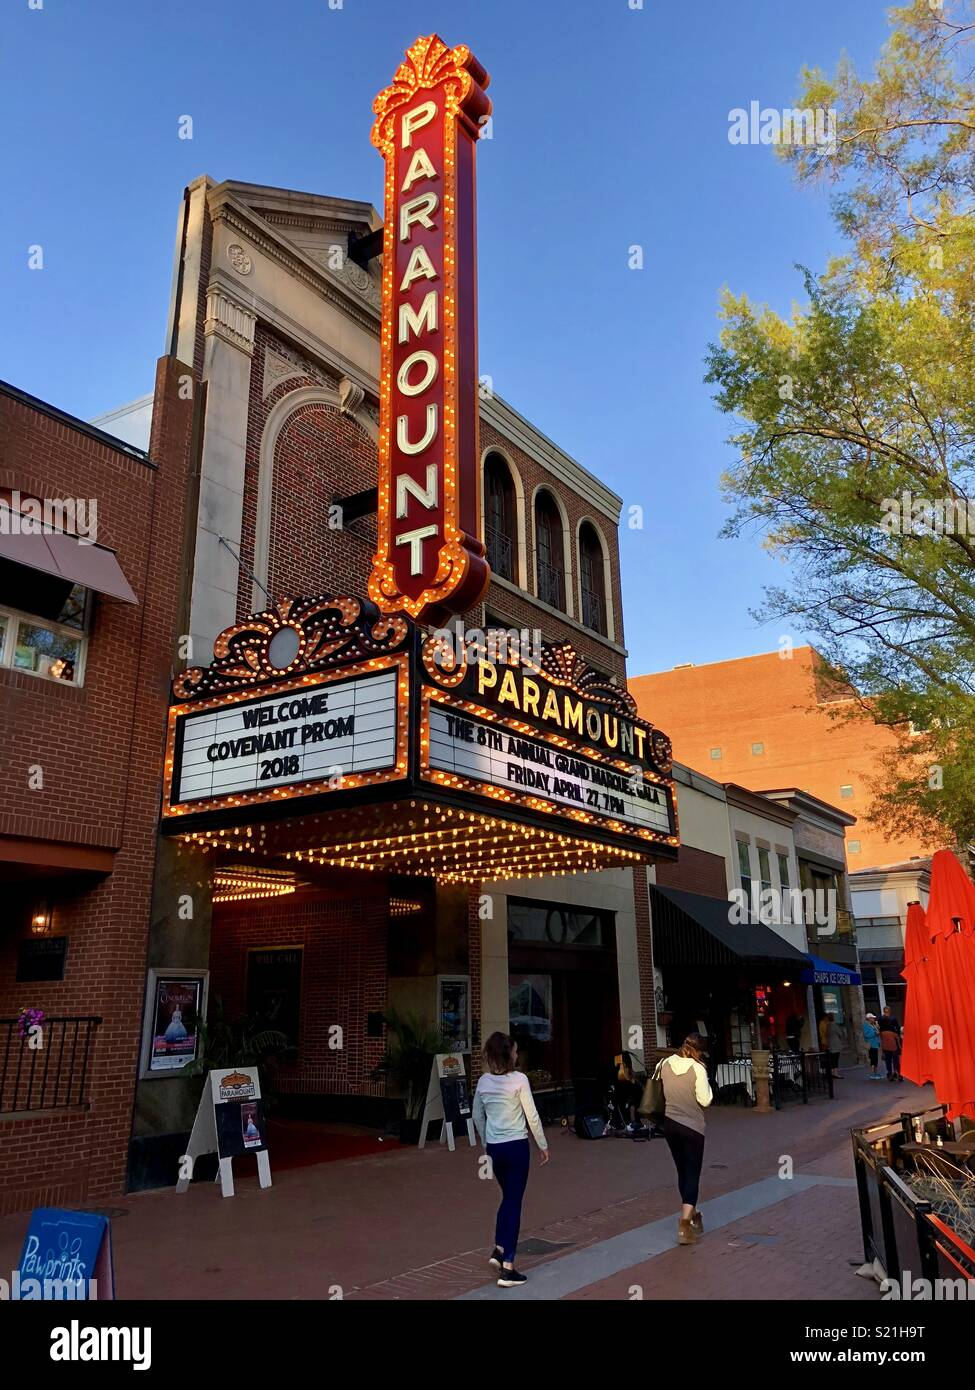 Paramount theatre in Charlottesville, Virginia, USA - Stock Image